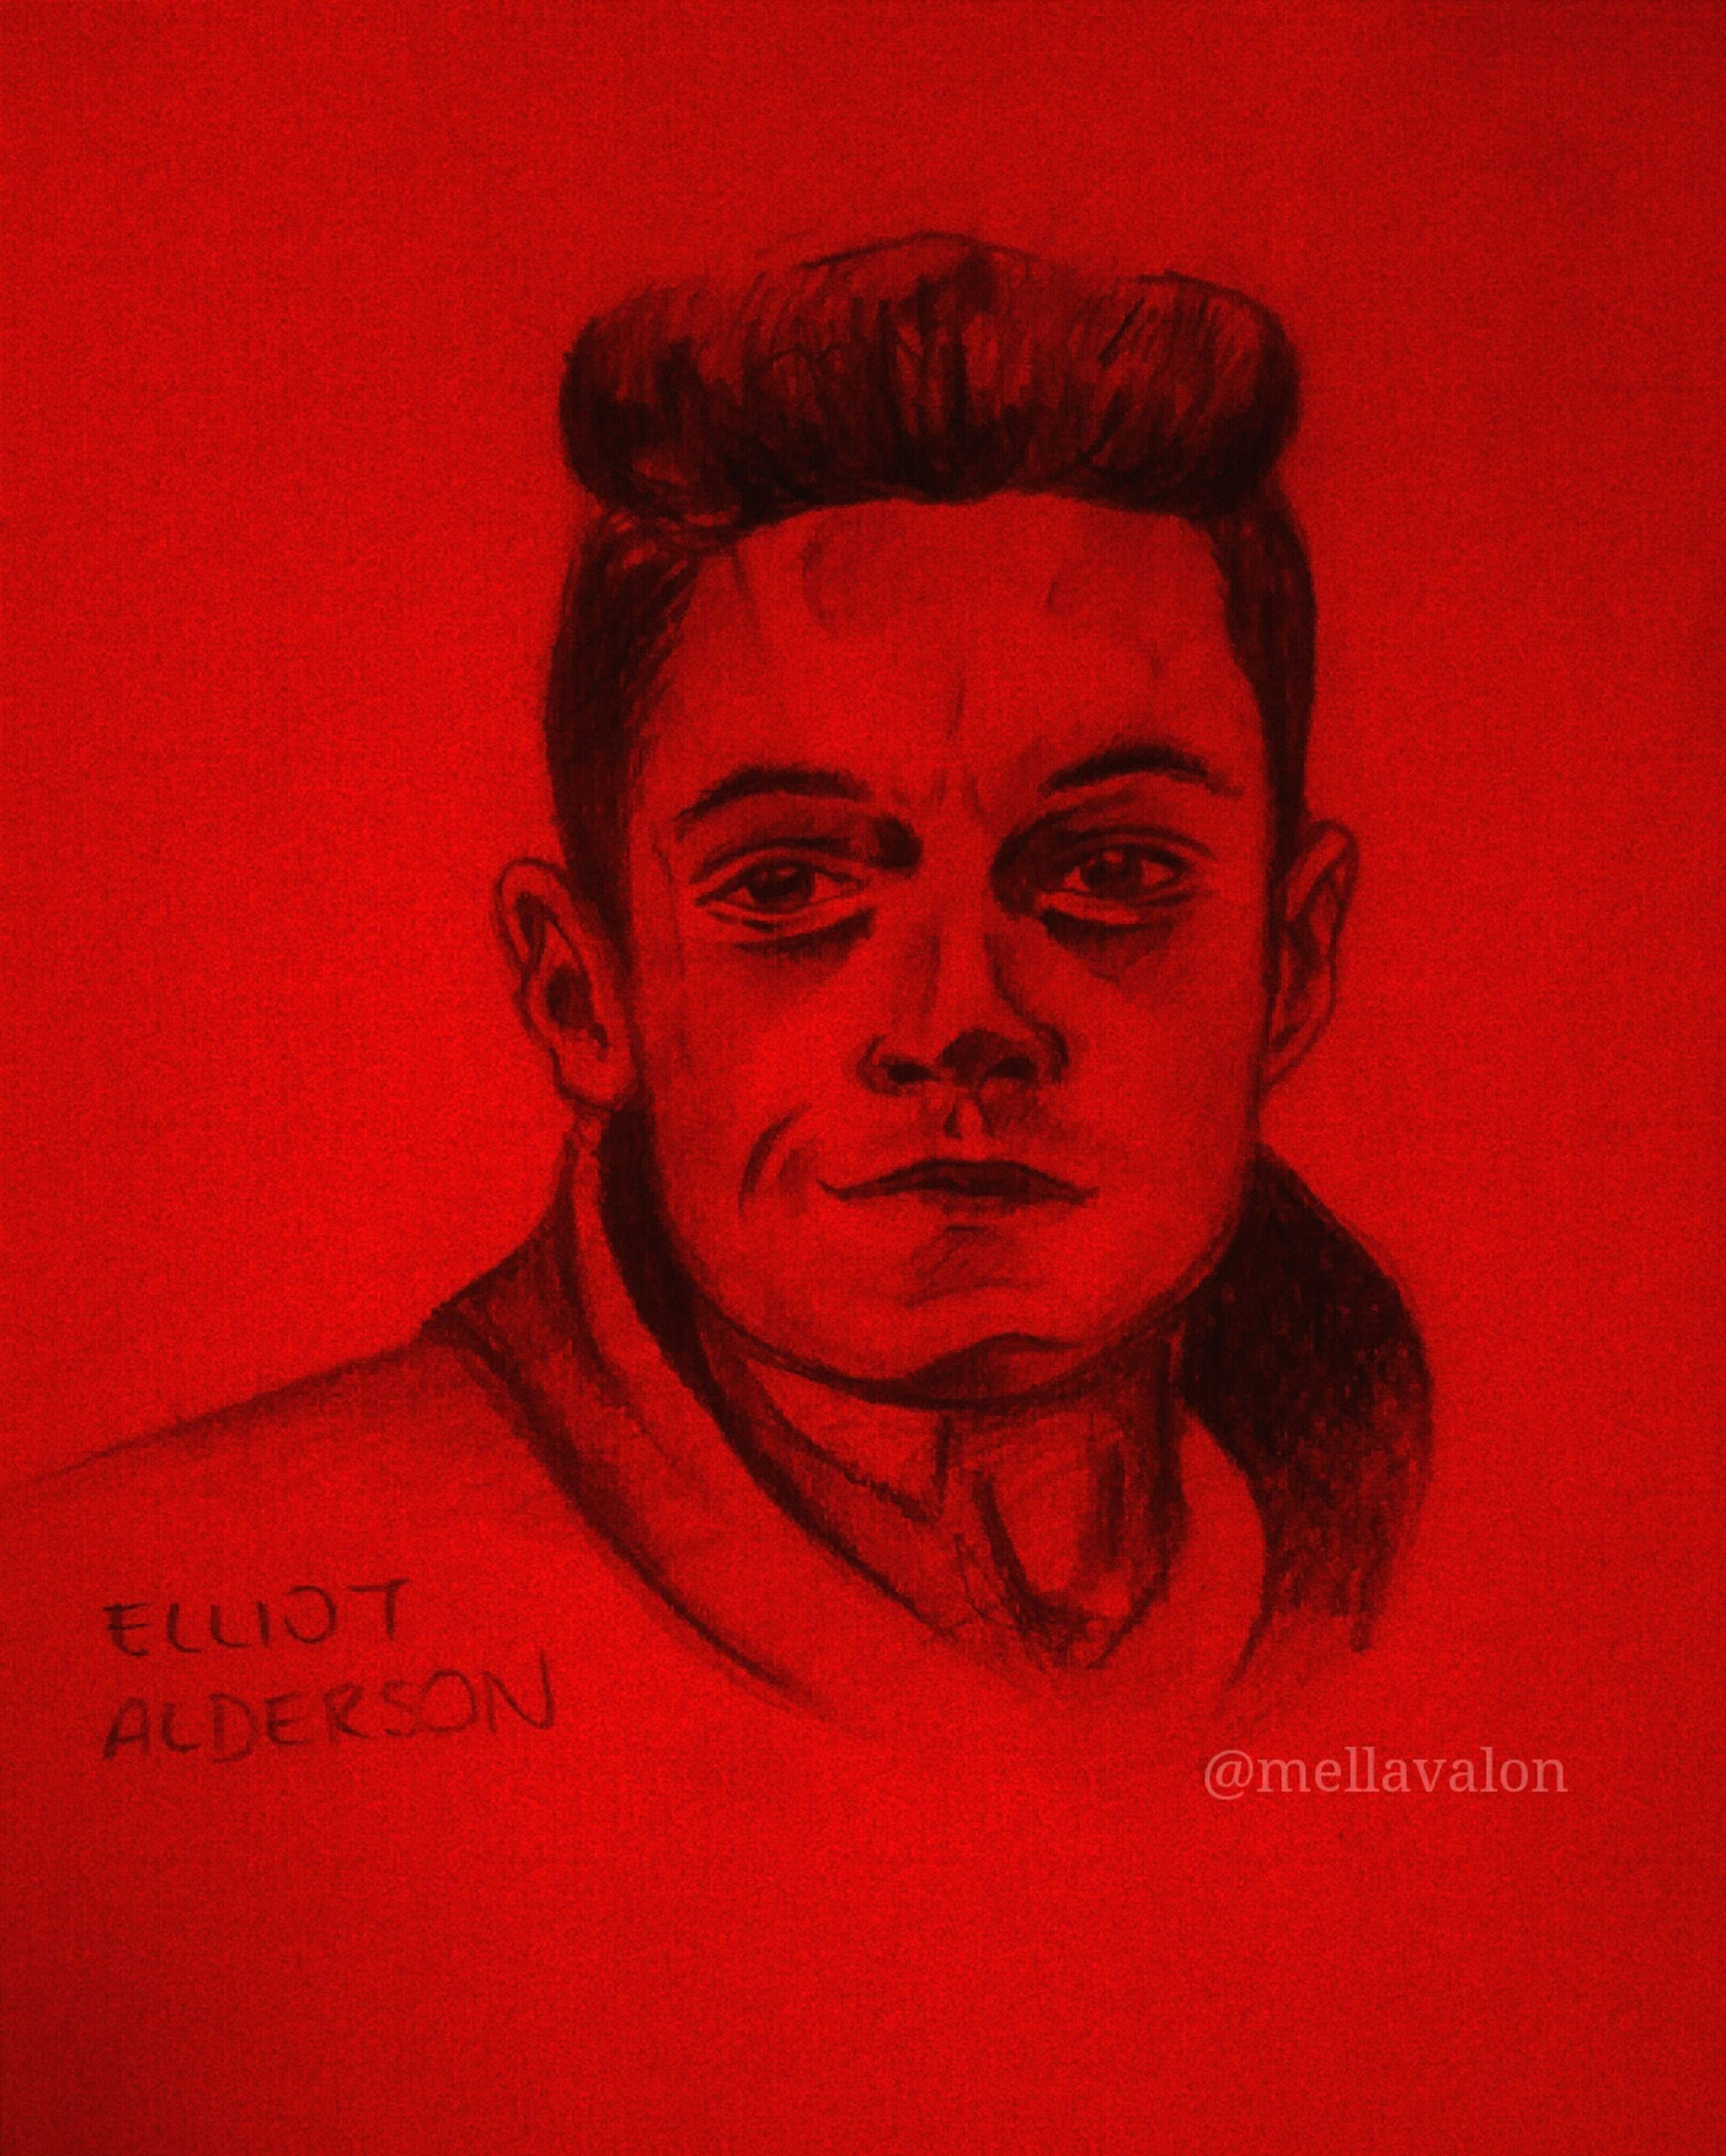 Mr.Robot // Elliot Alderson my fav tv character! ✨ Mrrobot Elliot Alderson Look At This Colors Check This Out Creative Light And Shadow ArtWork Drawing Art, Drawing, Creativity Art And Craft Art Draw Likeforlike Red My Drawing Creativity